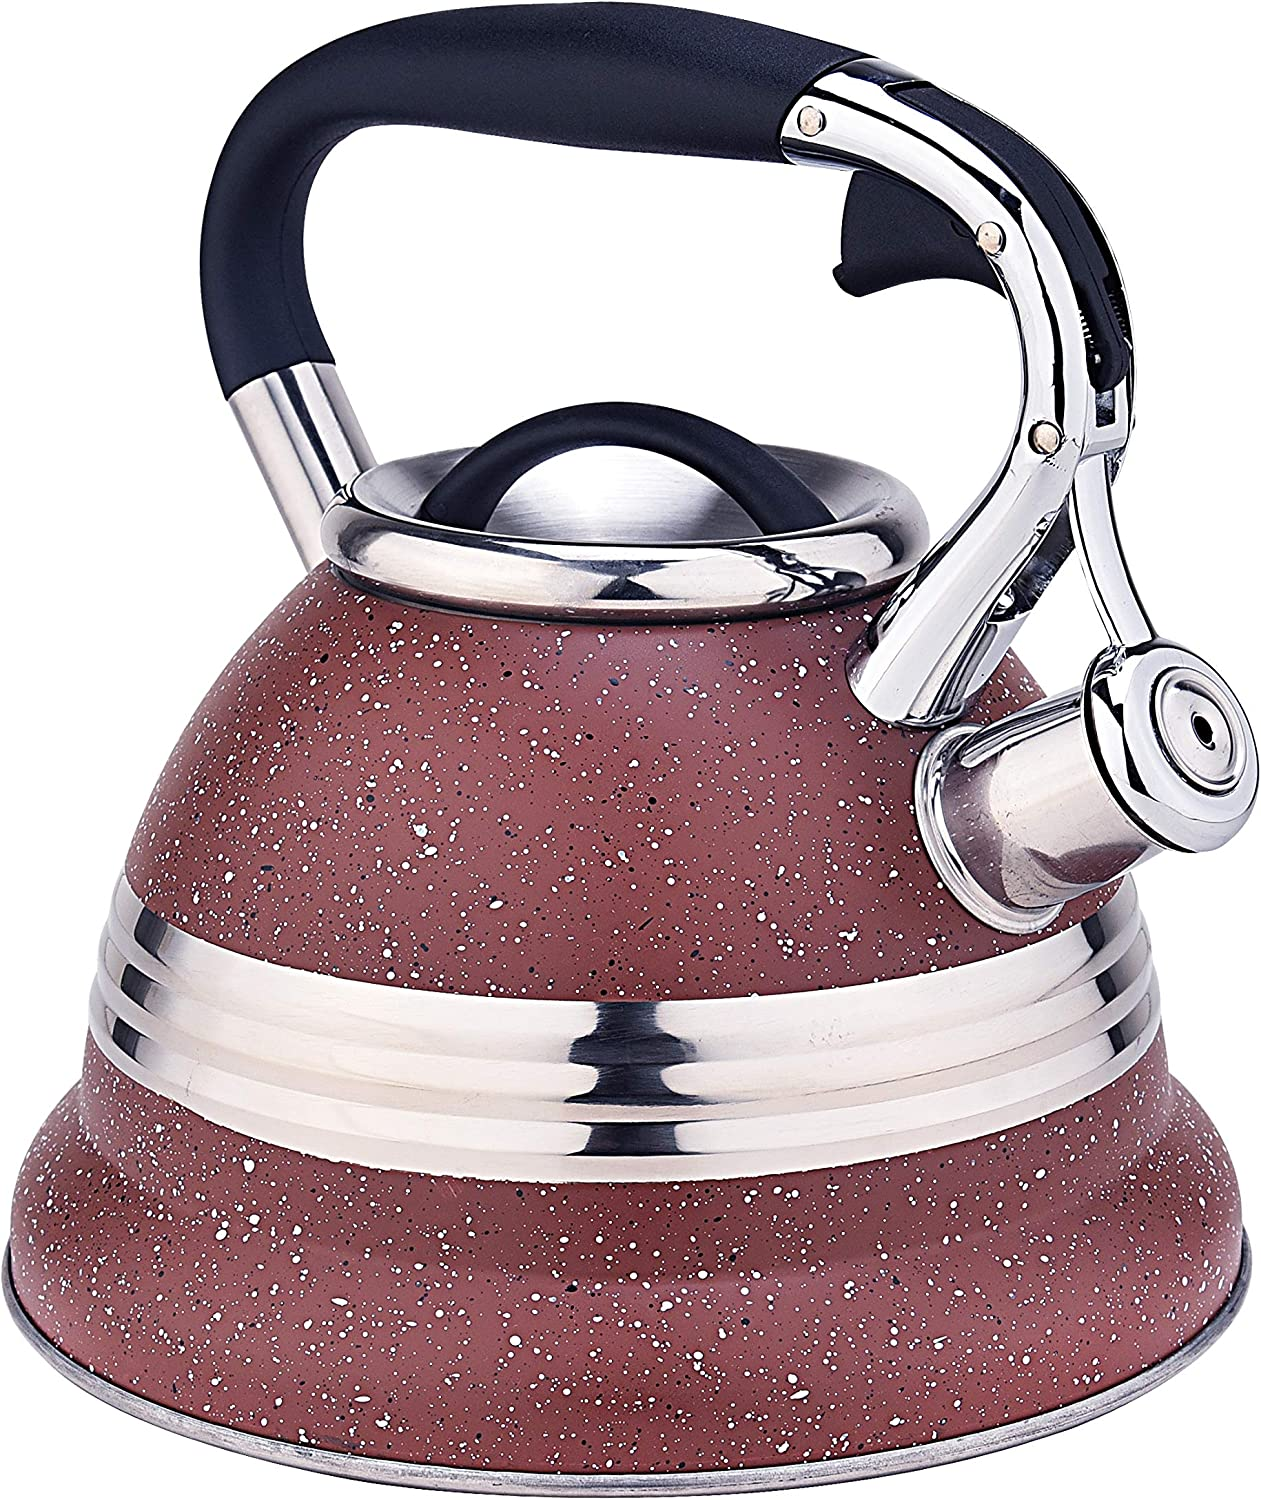 ARC Brown Easy-to-use with Stainless Steel Max 47% OFF Design Kettle Tea Food Stove Top